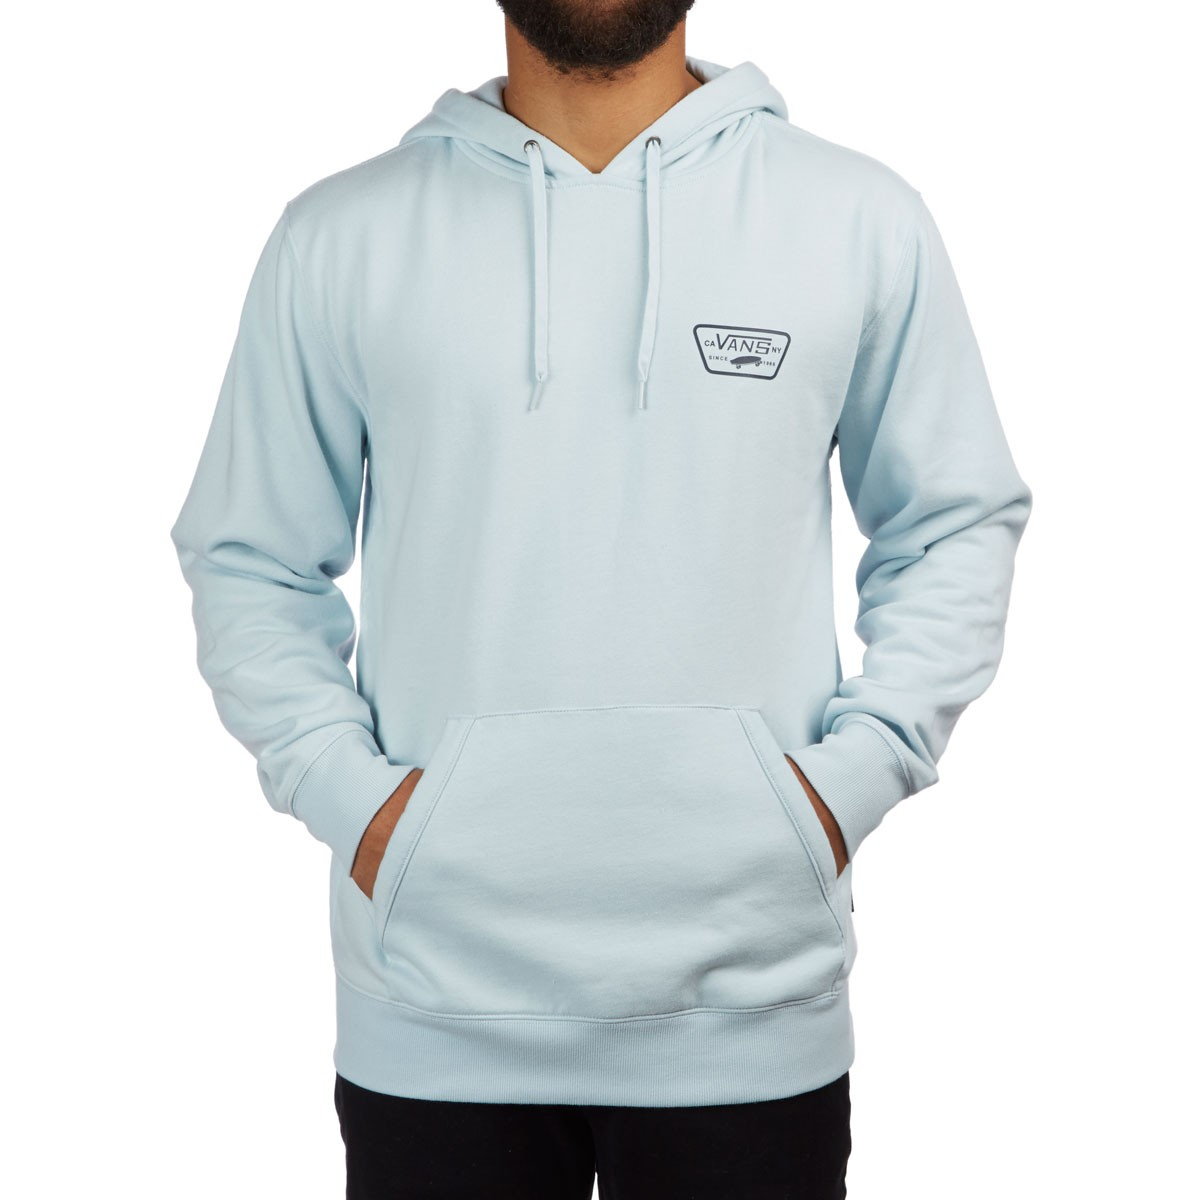 ddb13bad8a9 Vans Full Patched Hoodie - Baby Blue